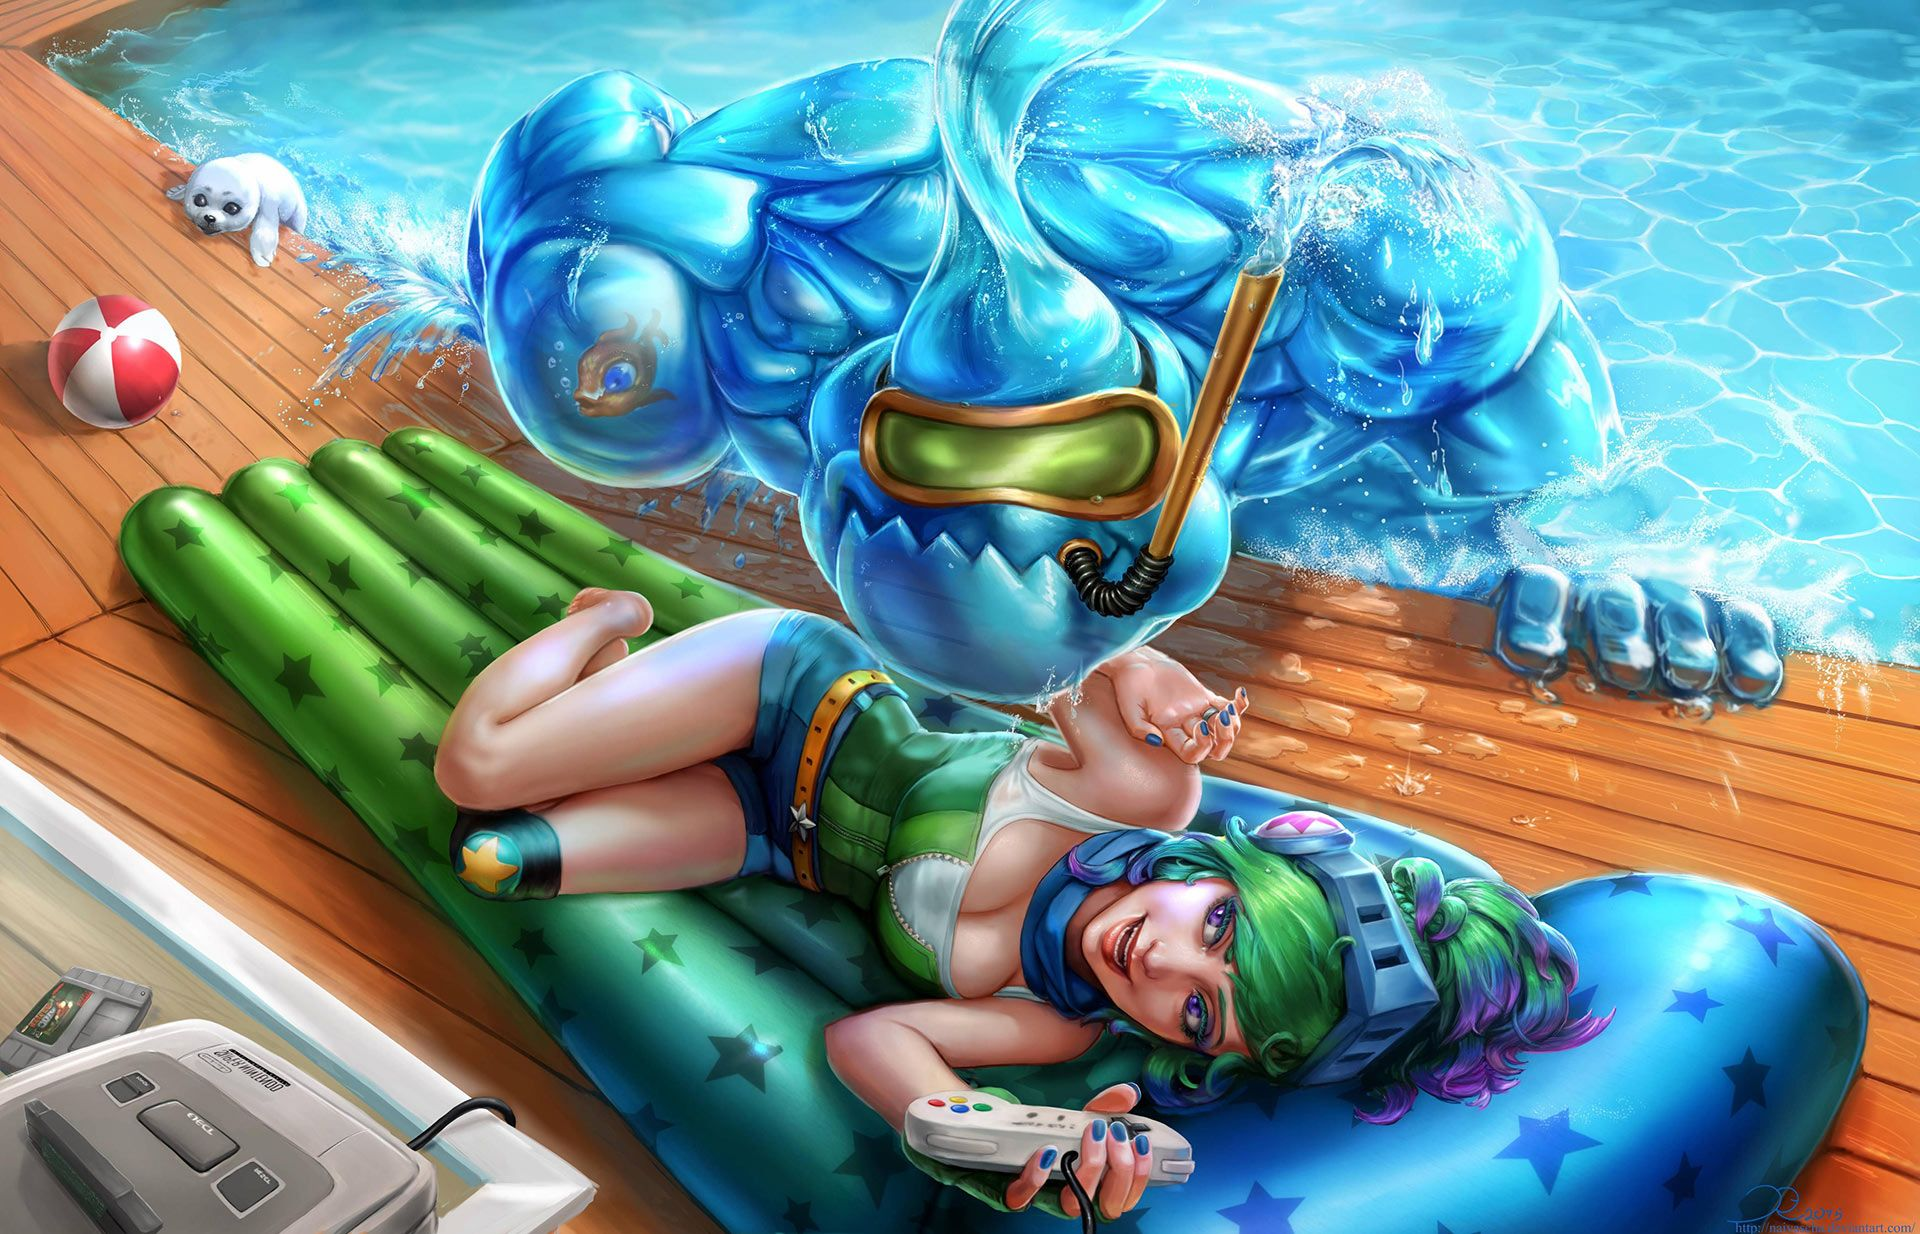 Download Wallpaper Fanart Arcade Riven And Zac Pool Party By